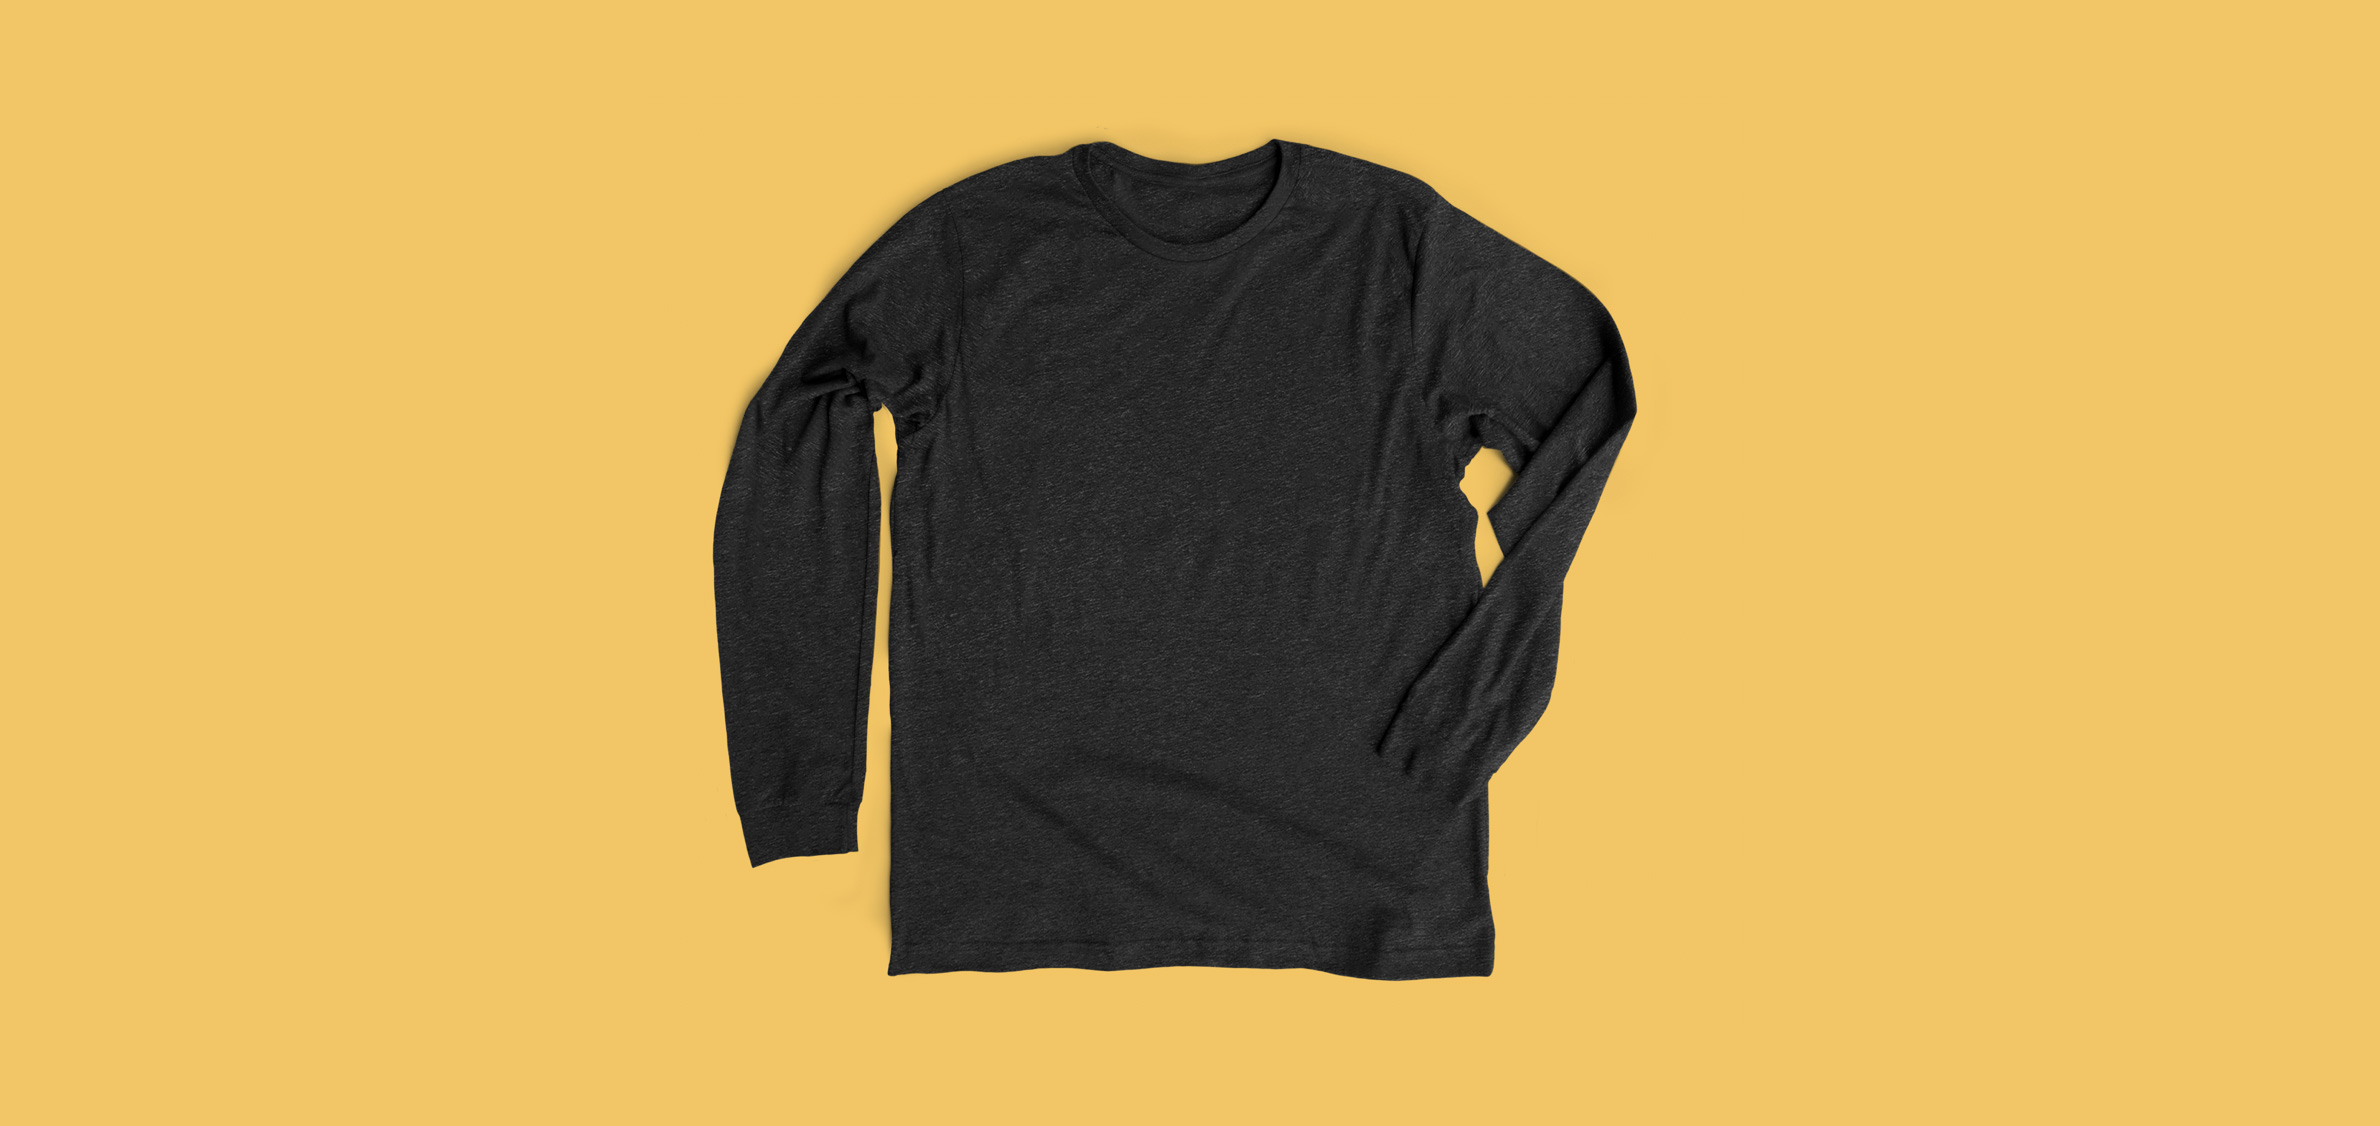 Our new Premium Long Sleeve Tee